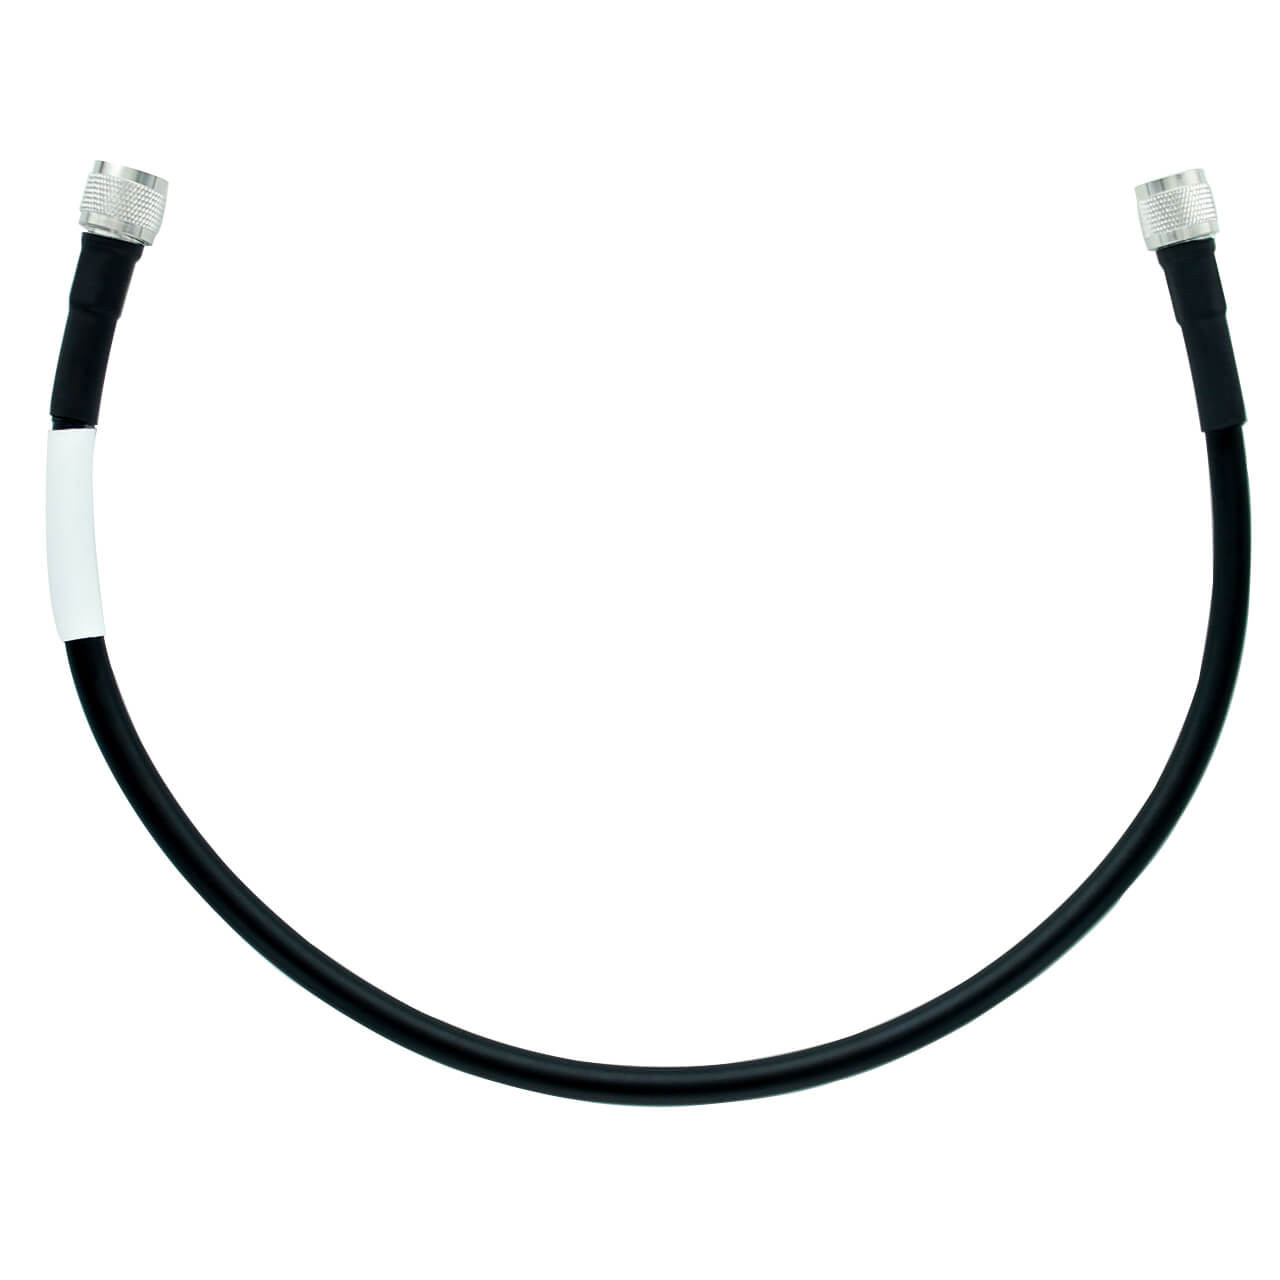 Bolton 400 Low Loss Cable - N-Male to N-Male PE Black Jacket 2 ft